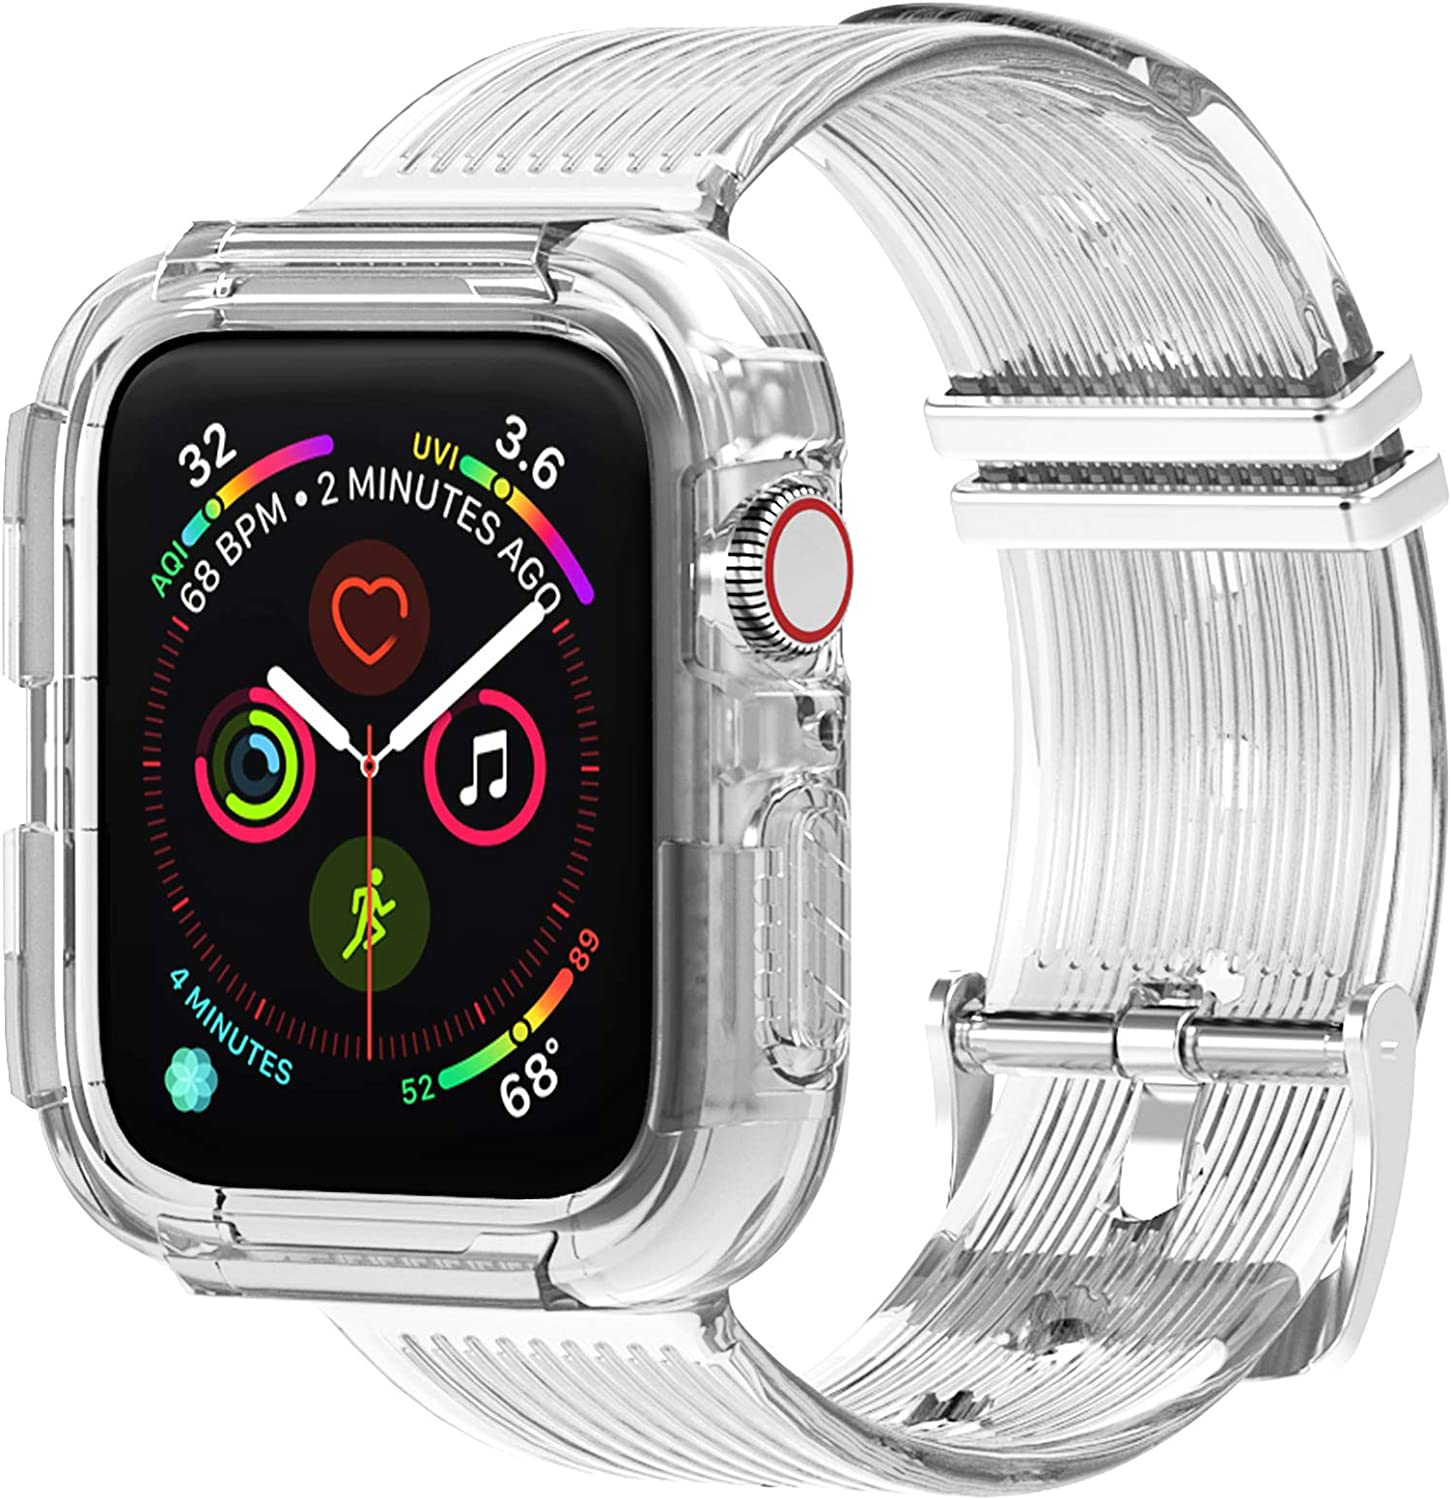 moencase Band Compatible with Apple Watch Band 38mm 40mm 42mm 44mm with Case, Clear Soft TPU Band for Apple Watch Series 1/2/3/4/5(38mm/40mm Clear)